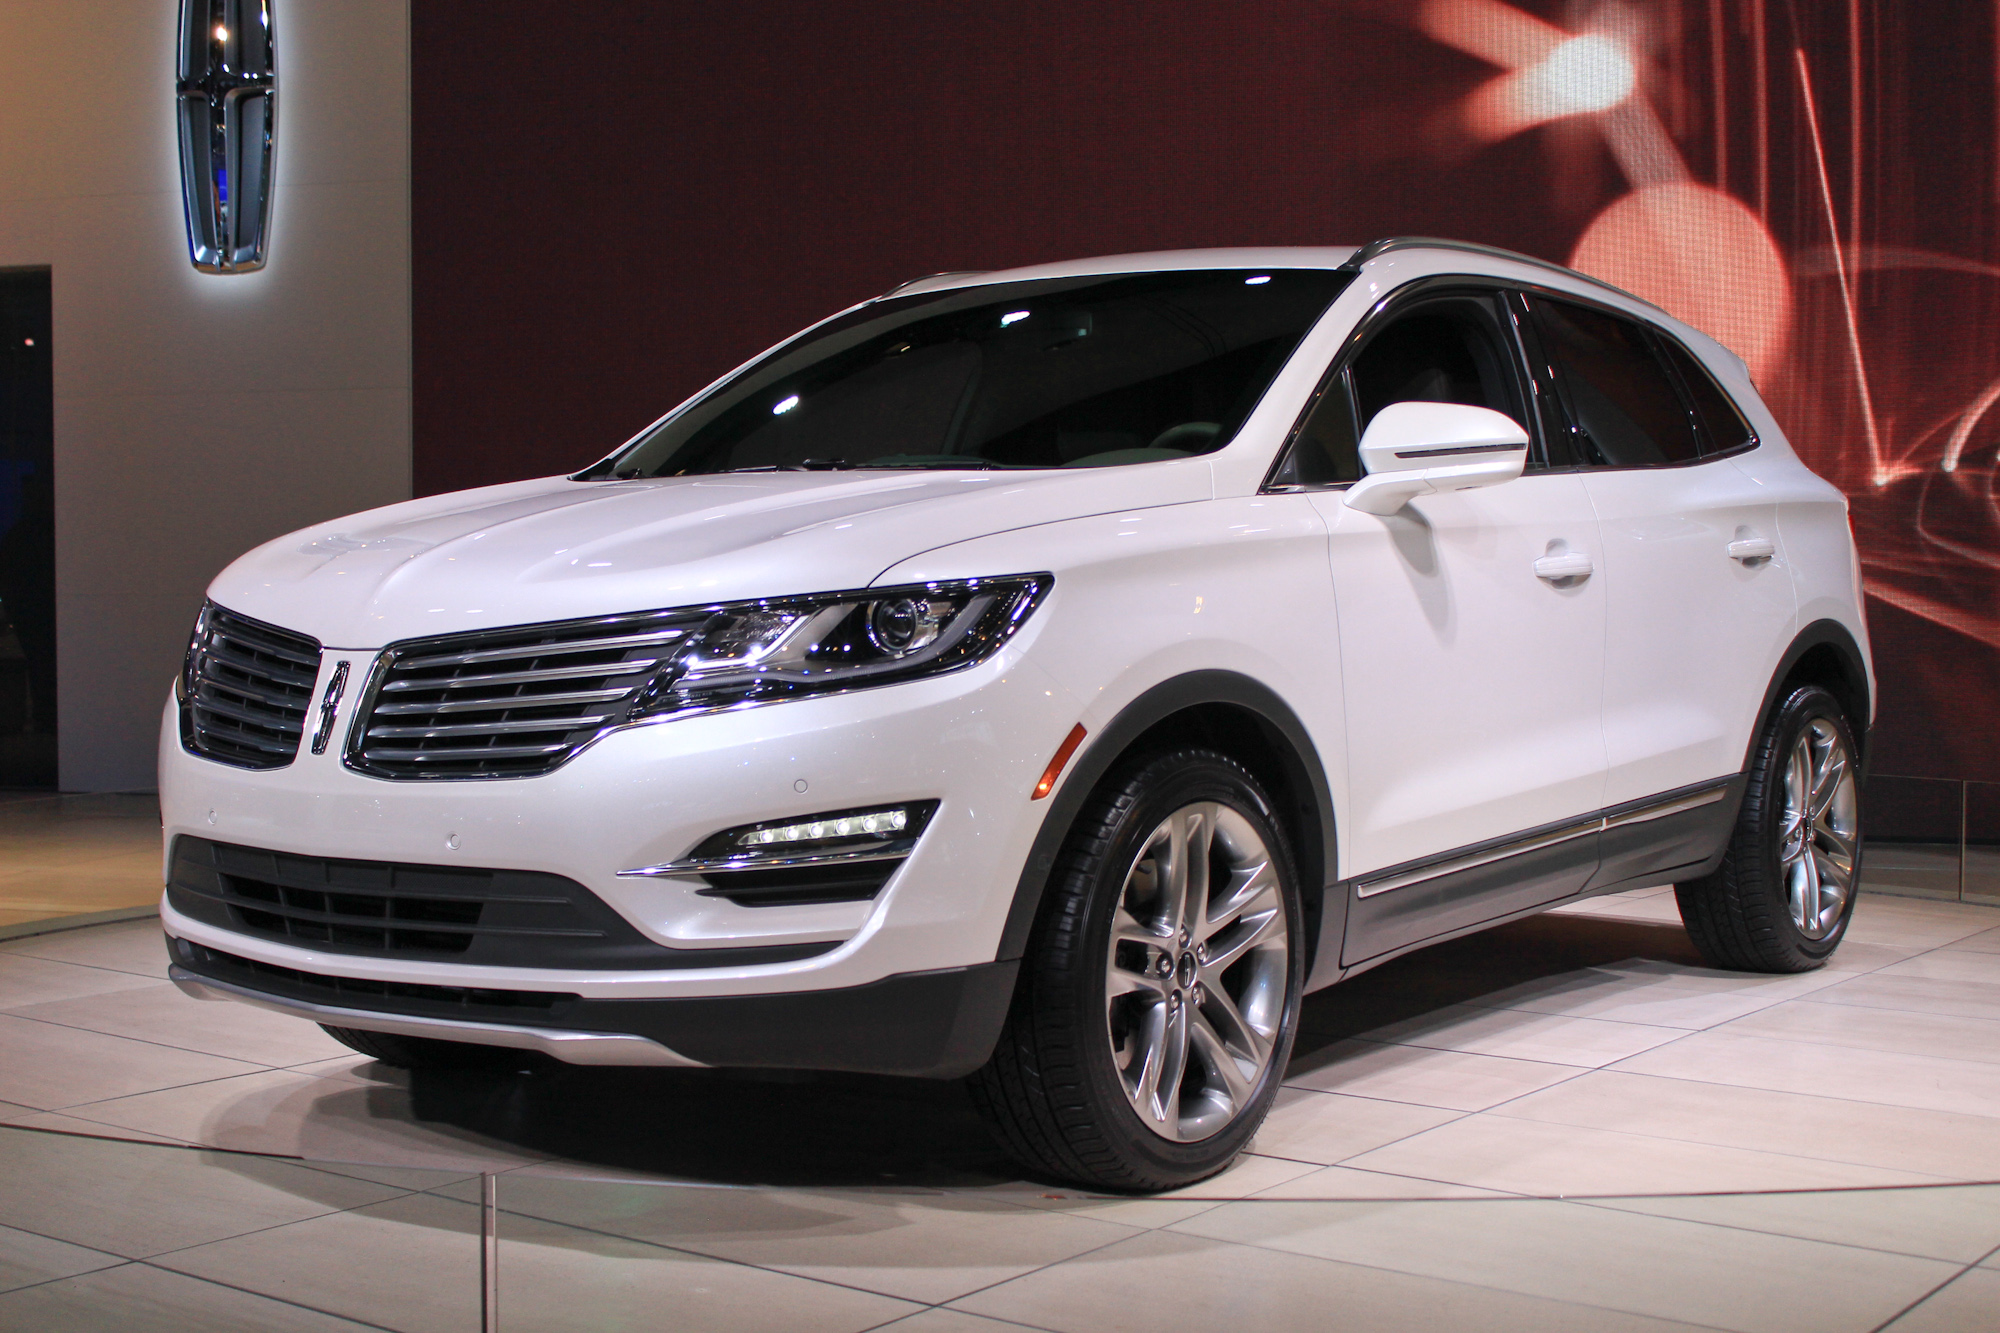 2015 lincoln mkc compact crossover pioneers new ecoboost engine live photos. Black Bedroom Furniture Sets. Home Design Ideas